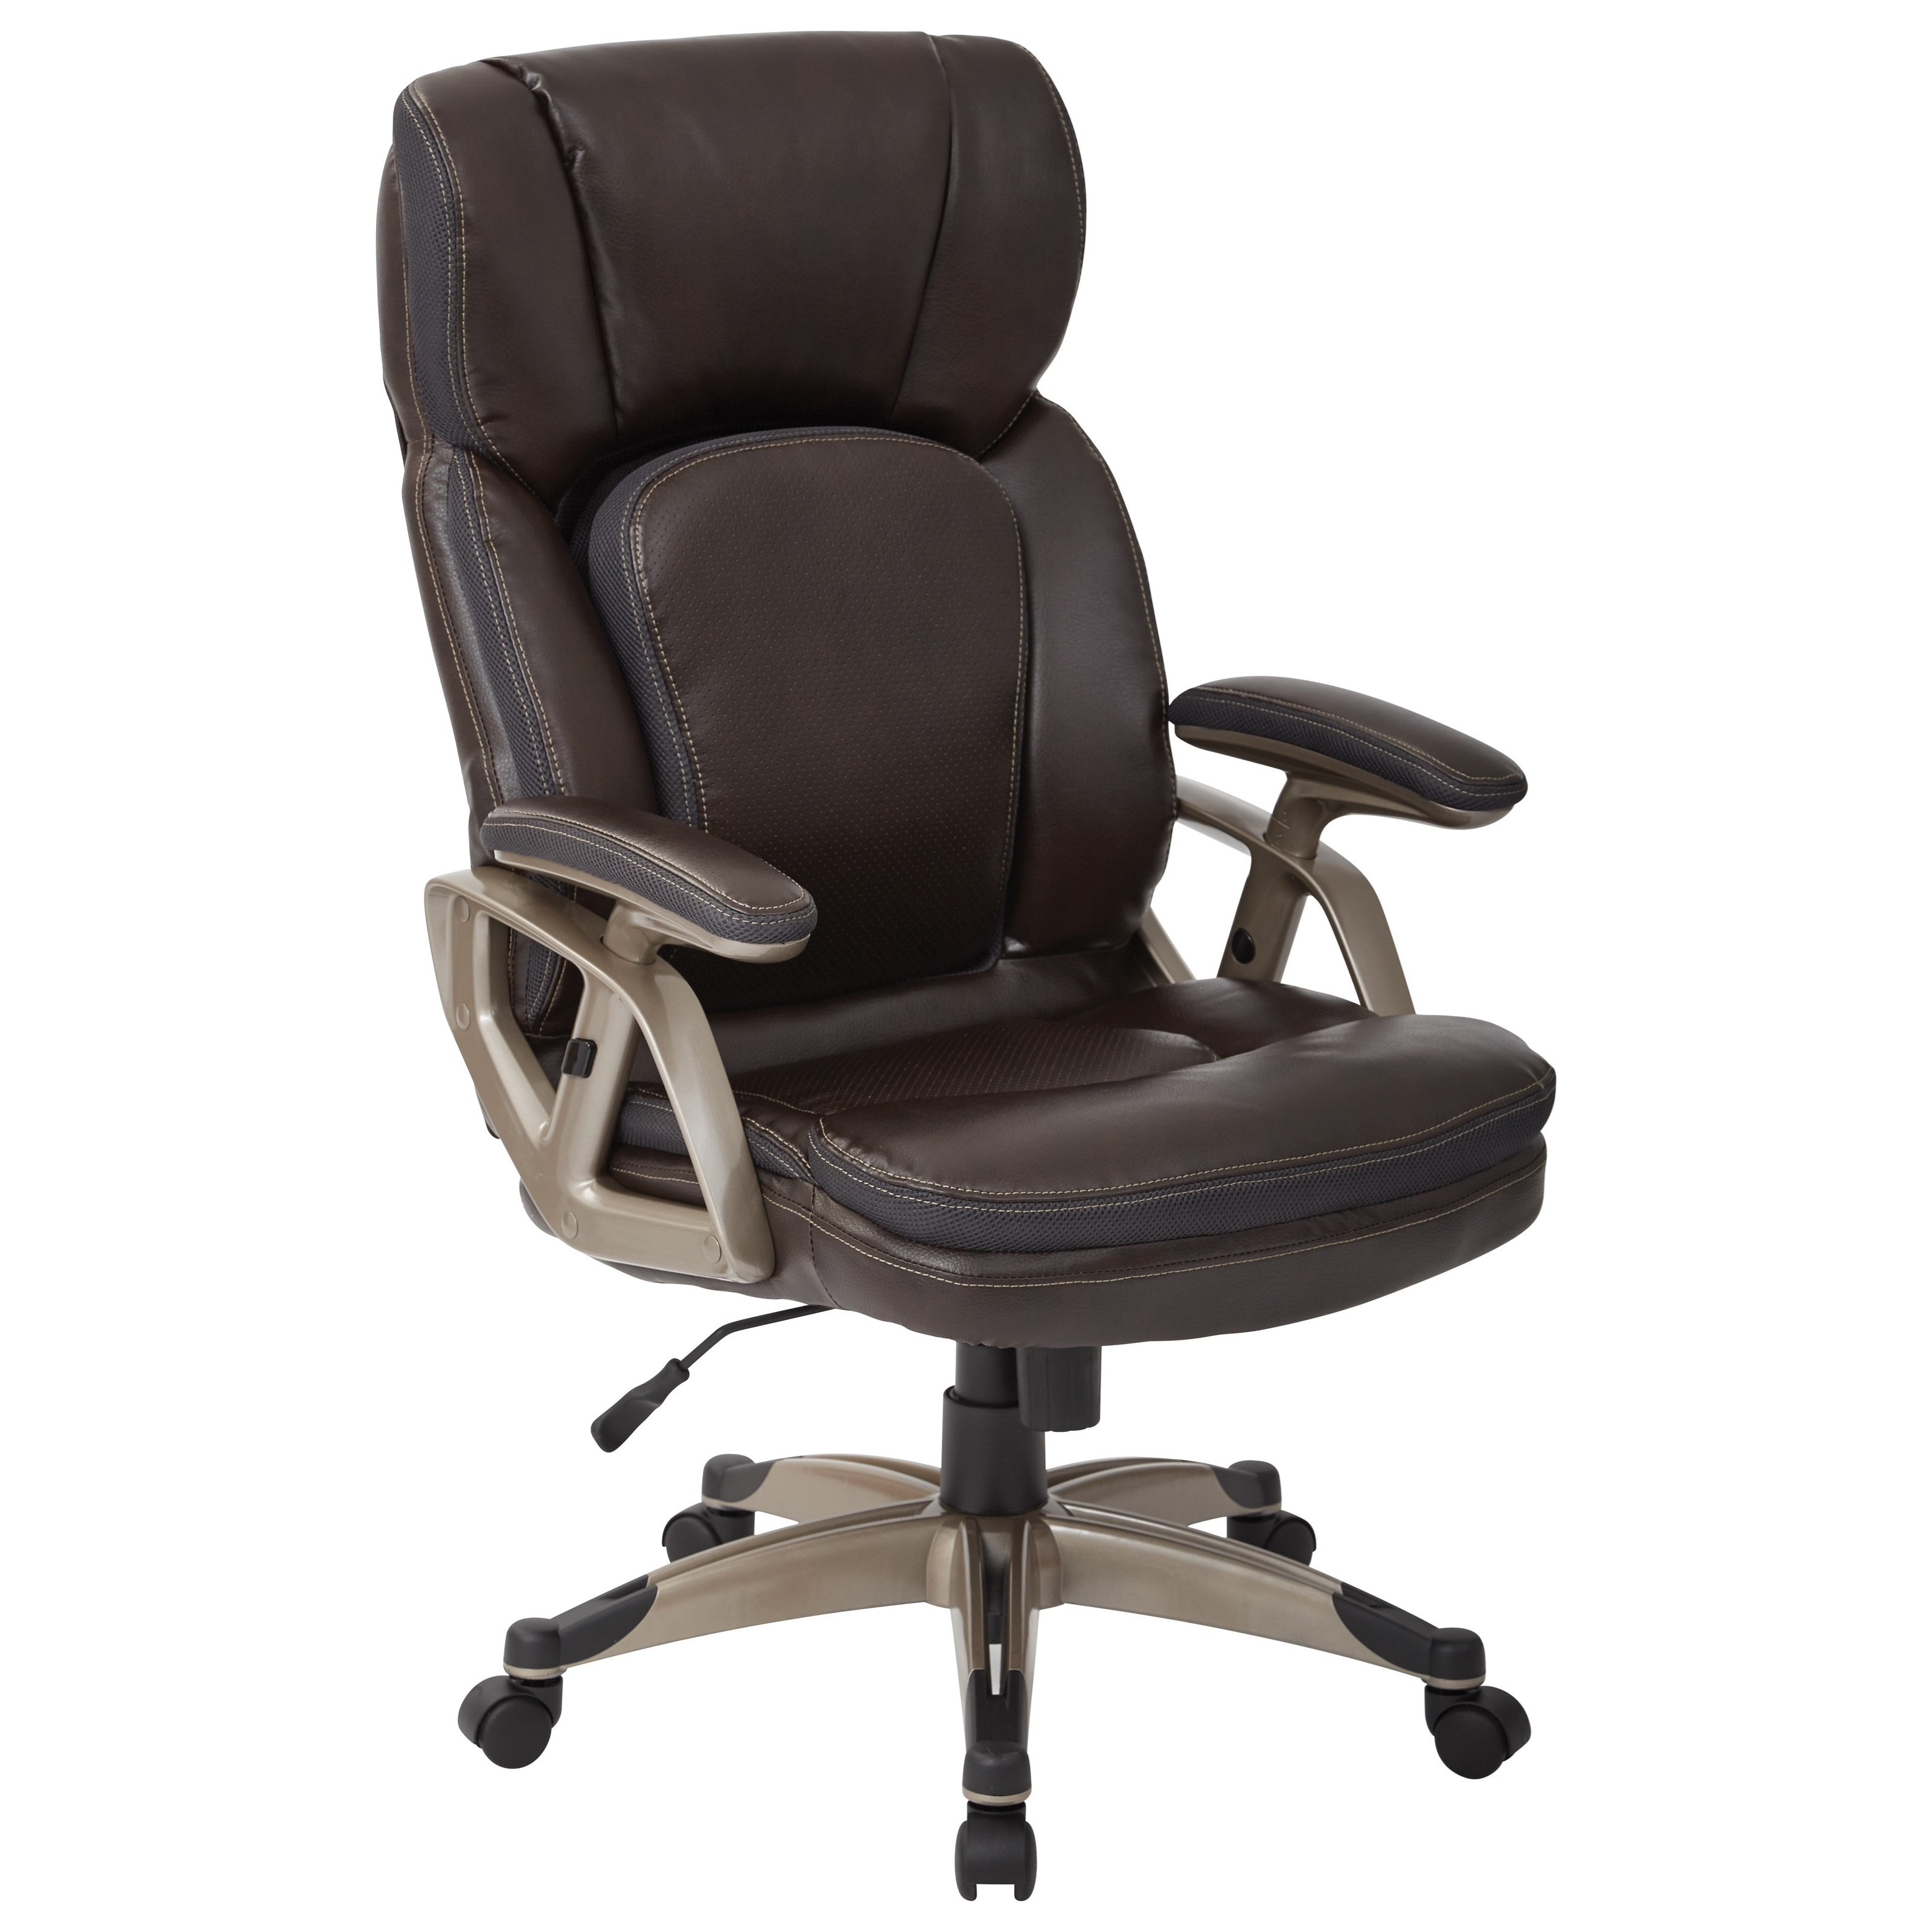 Executive Leather Chair Office Chairs Executive Bonded Leather Chair By Office Star At Becker Furniture World